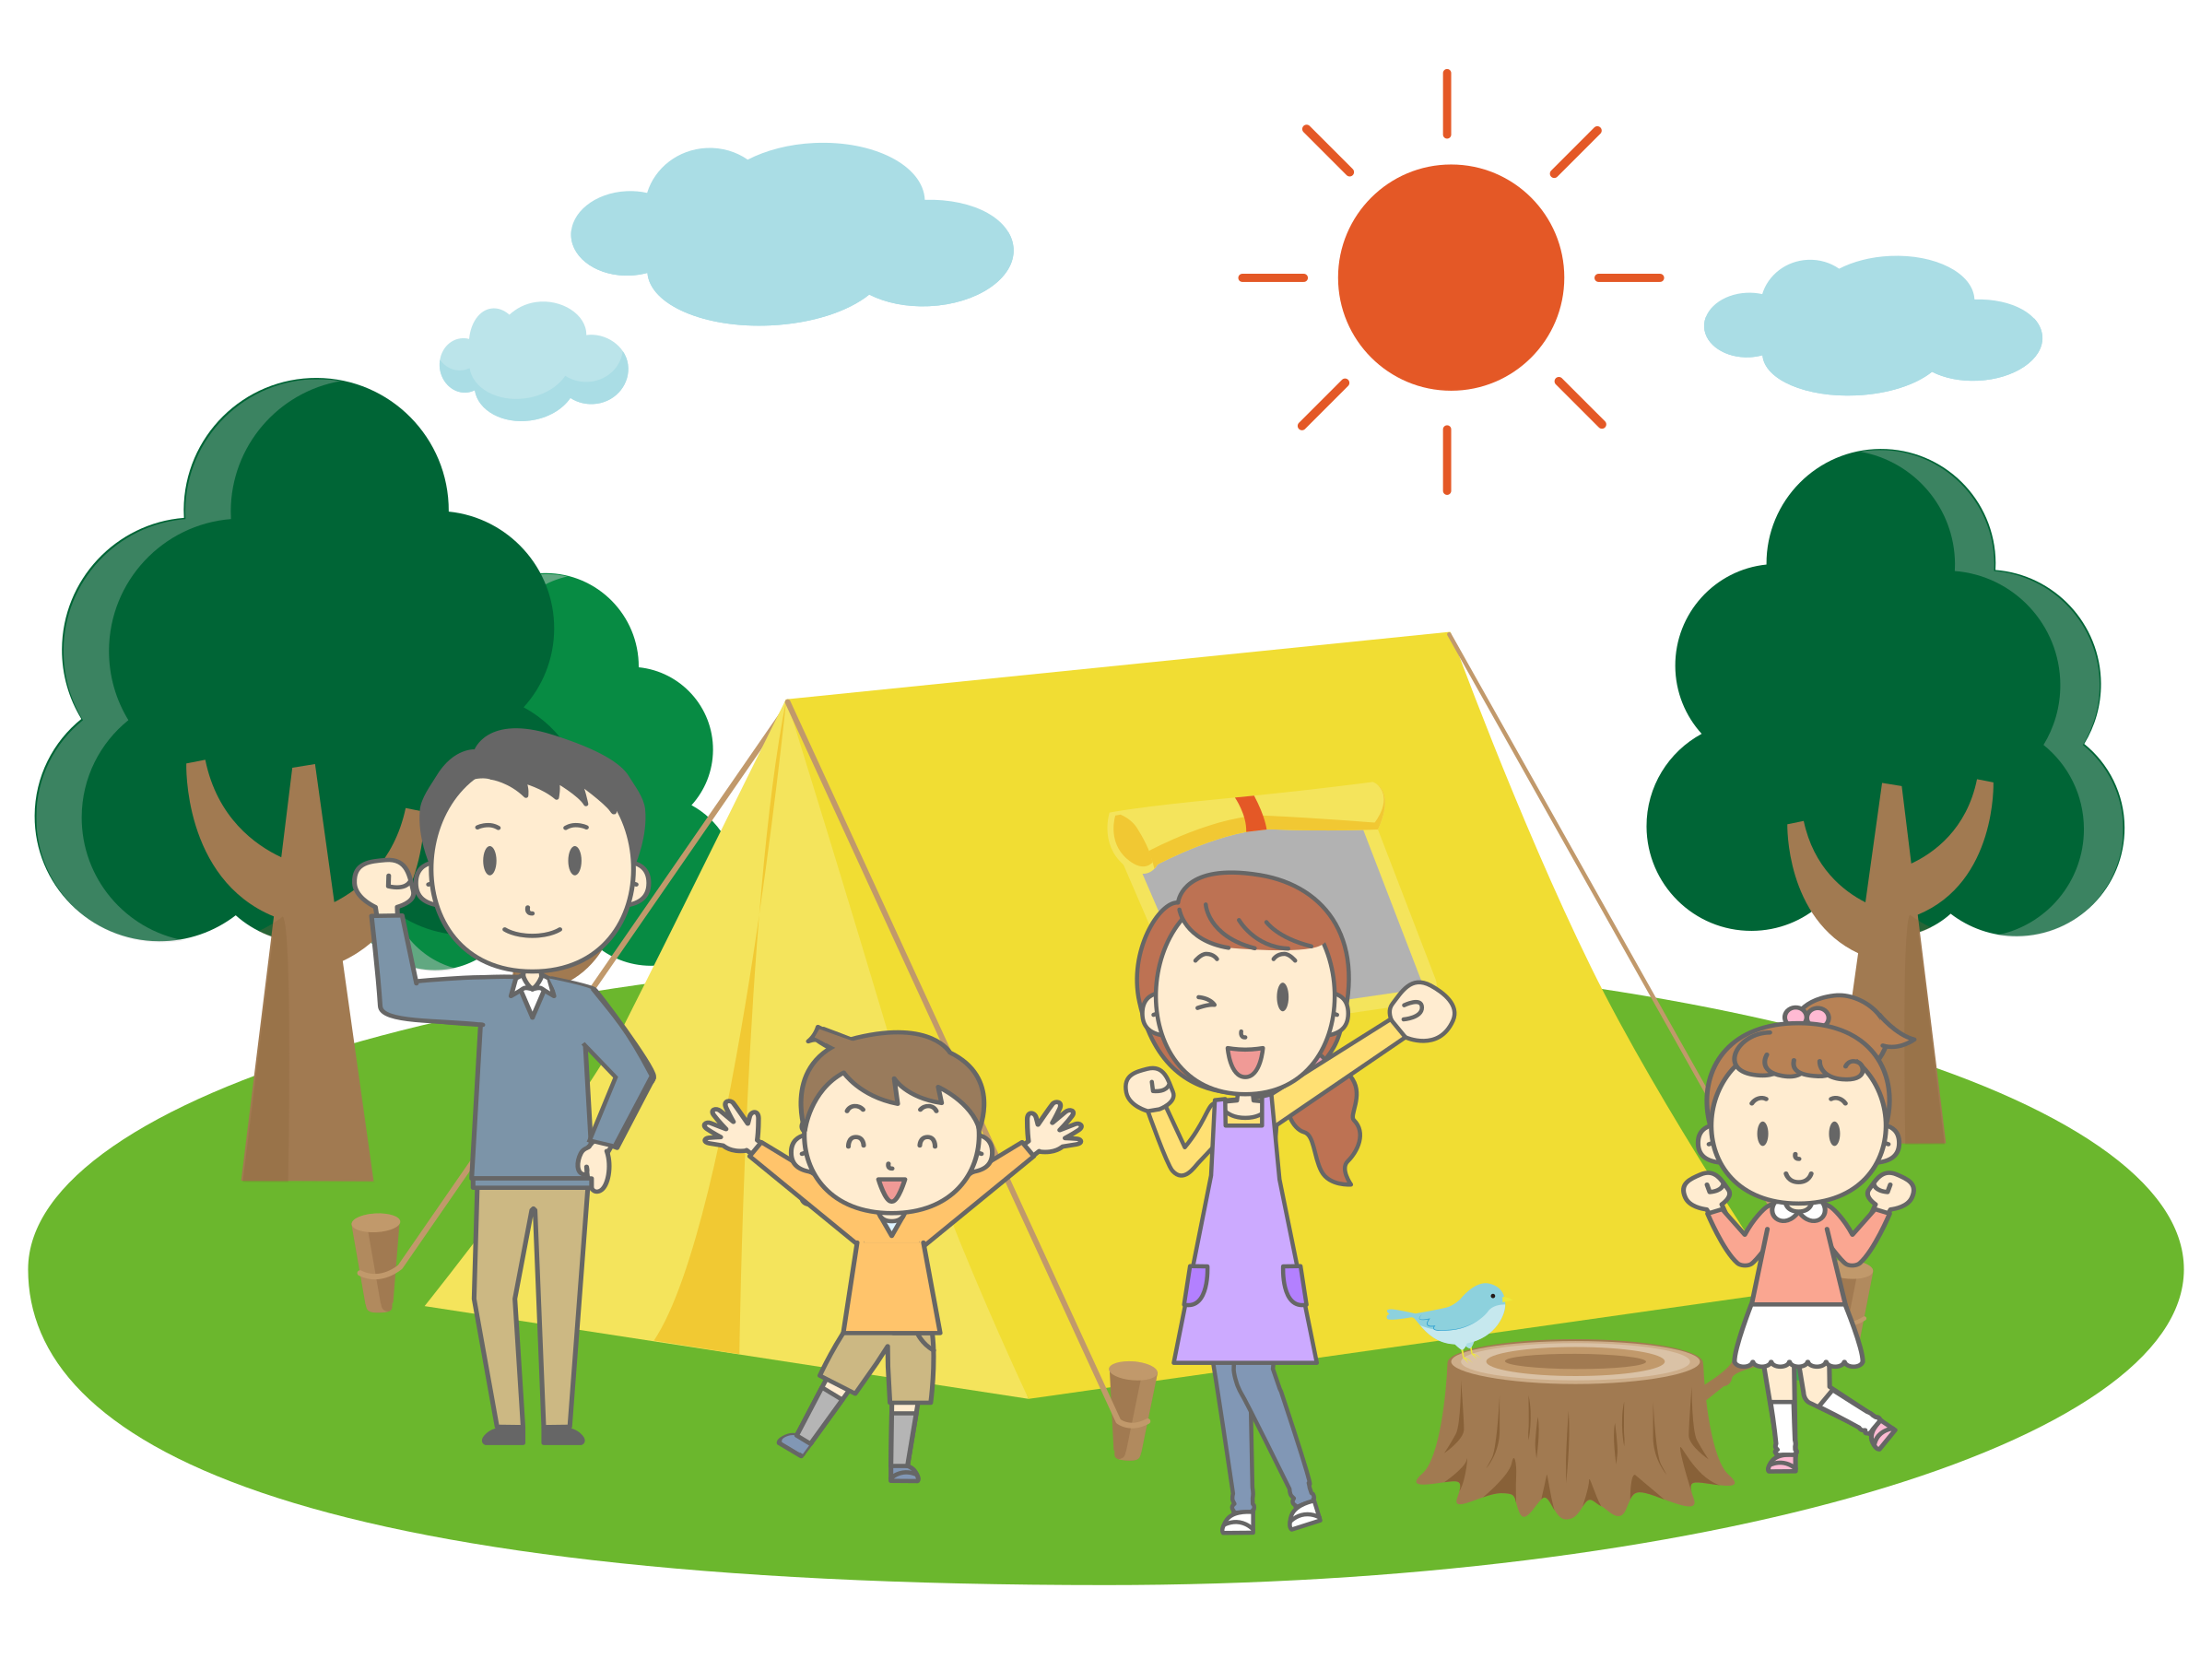 Clipart Family Cartoon Clipart Family Cartoon Transparent Free For Download On Webstockreview 2020